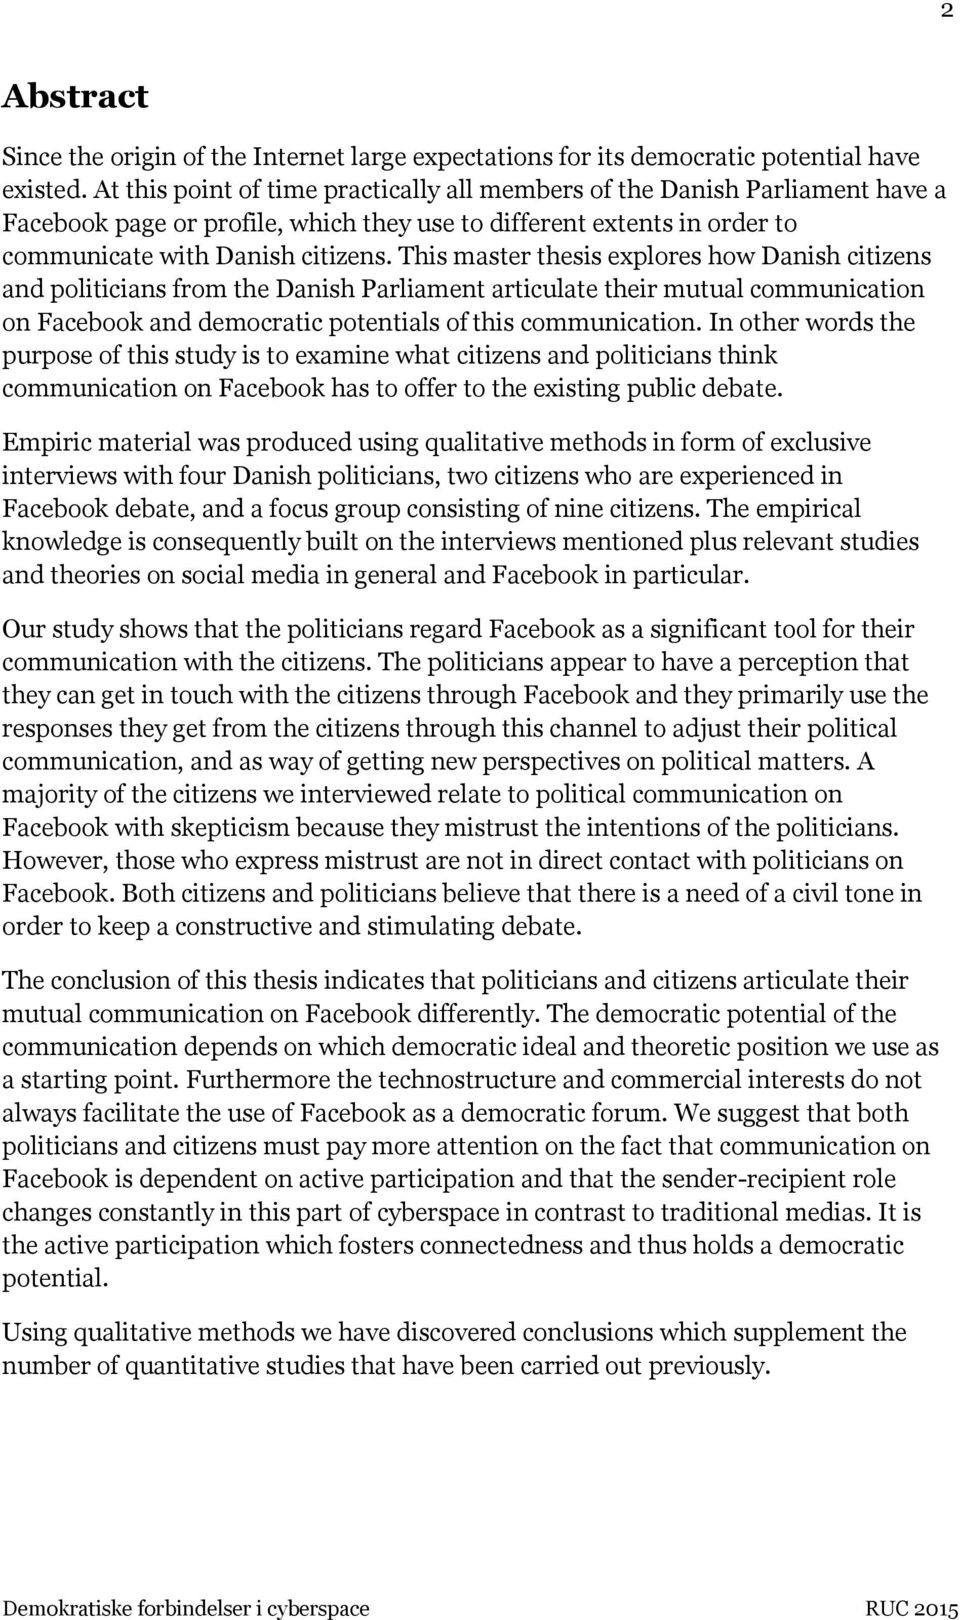 This master thesis explores how Danish citizens and politicians from the Danish Parliament articulate their mutual communication on Facebook and democratic potentials of this communication.